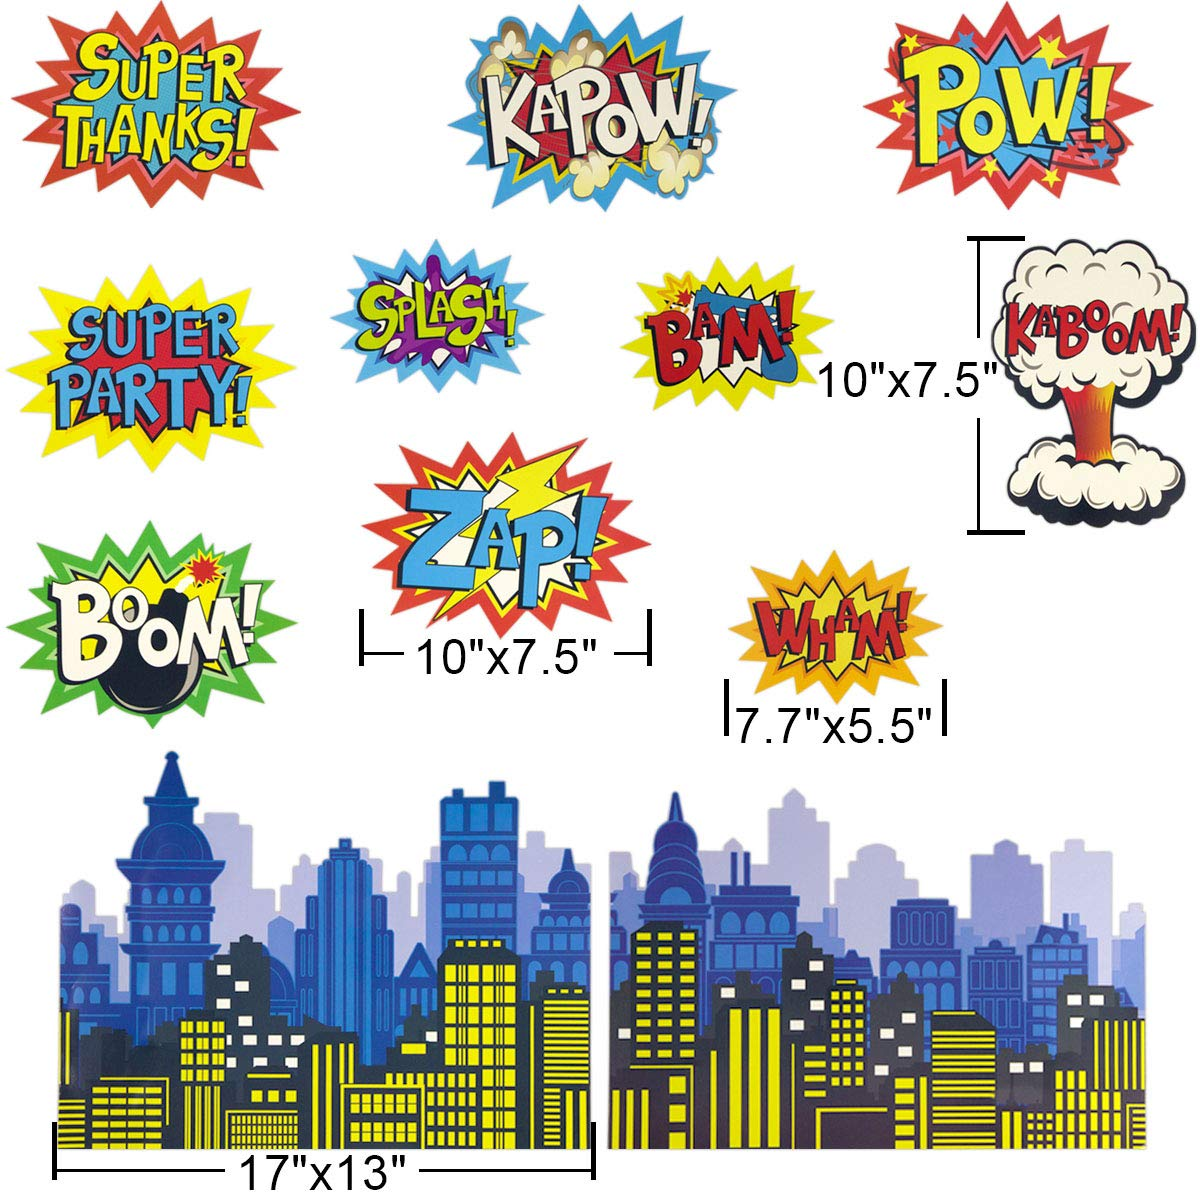 Large Superhero Action Signs Cutouts 12PCS Words and Cityscape Cut-Outs for Party Decoration by Fancy Land (Image #2)